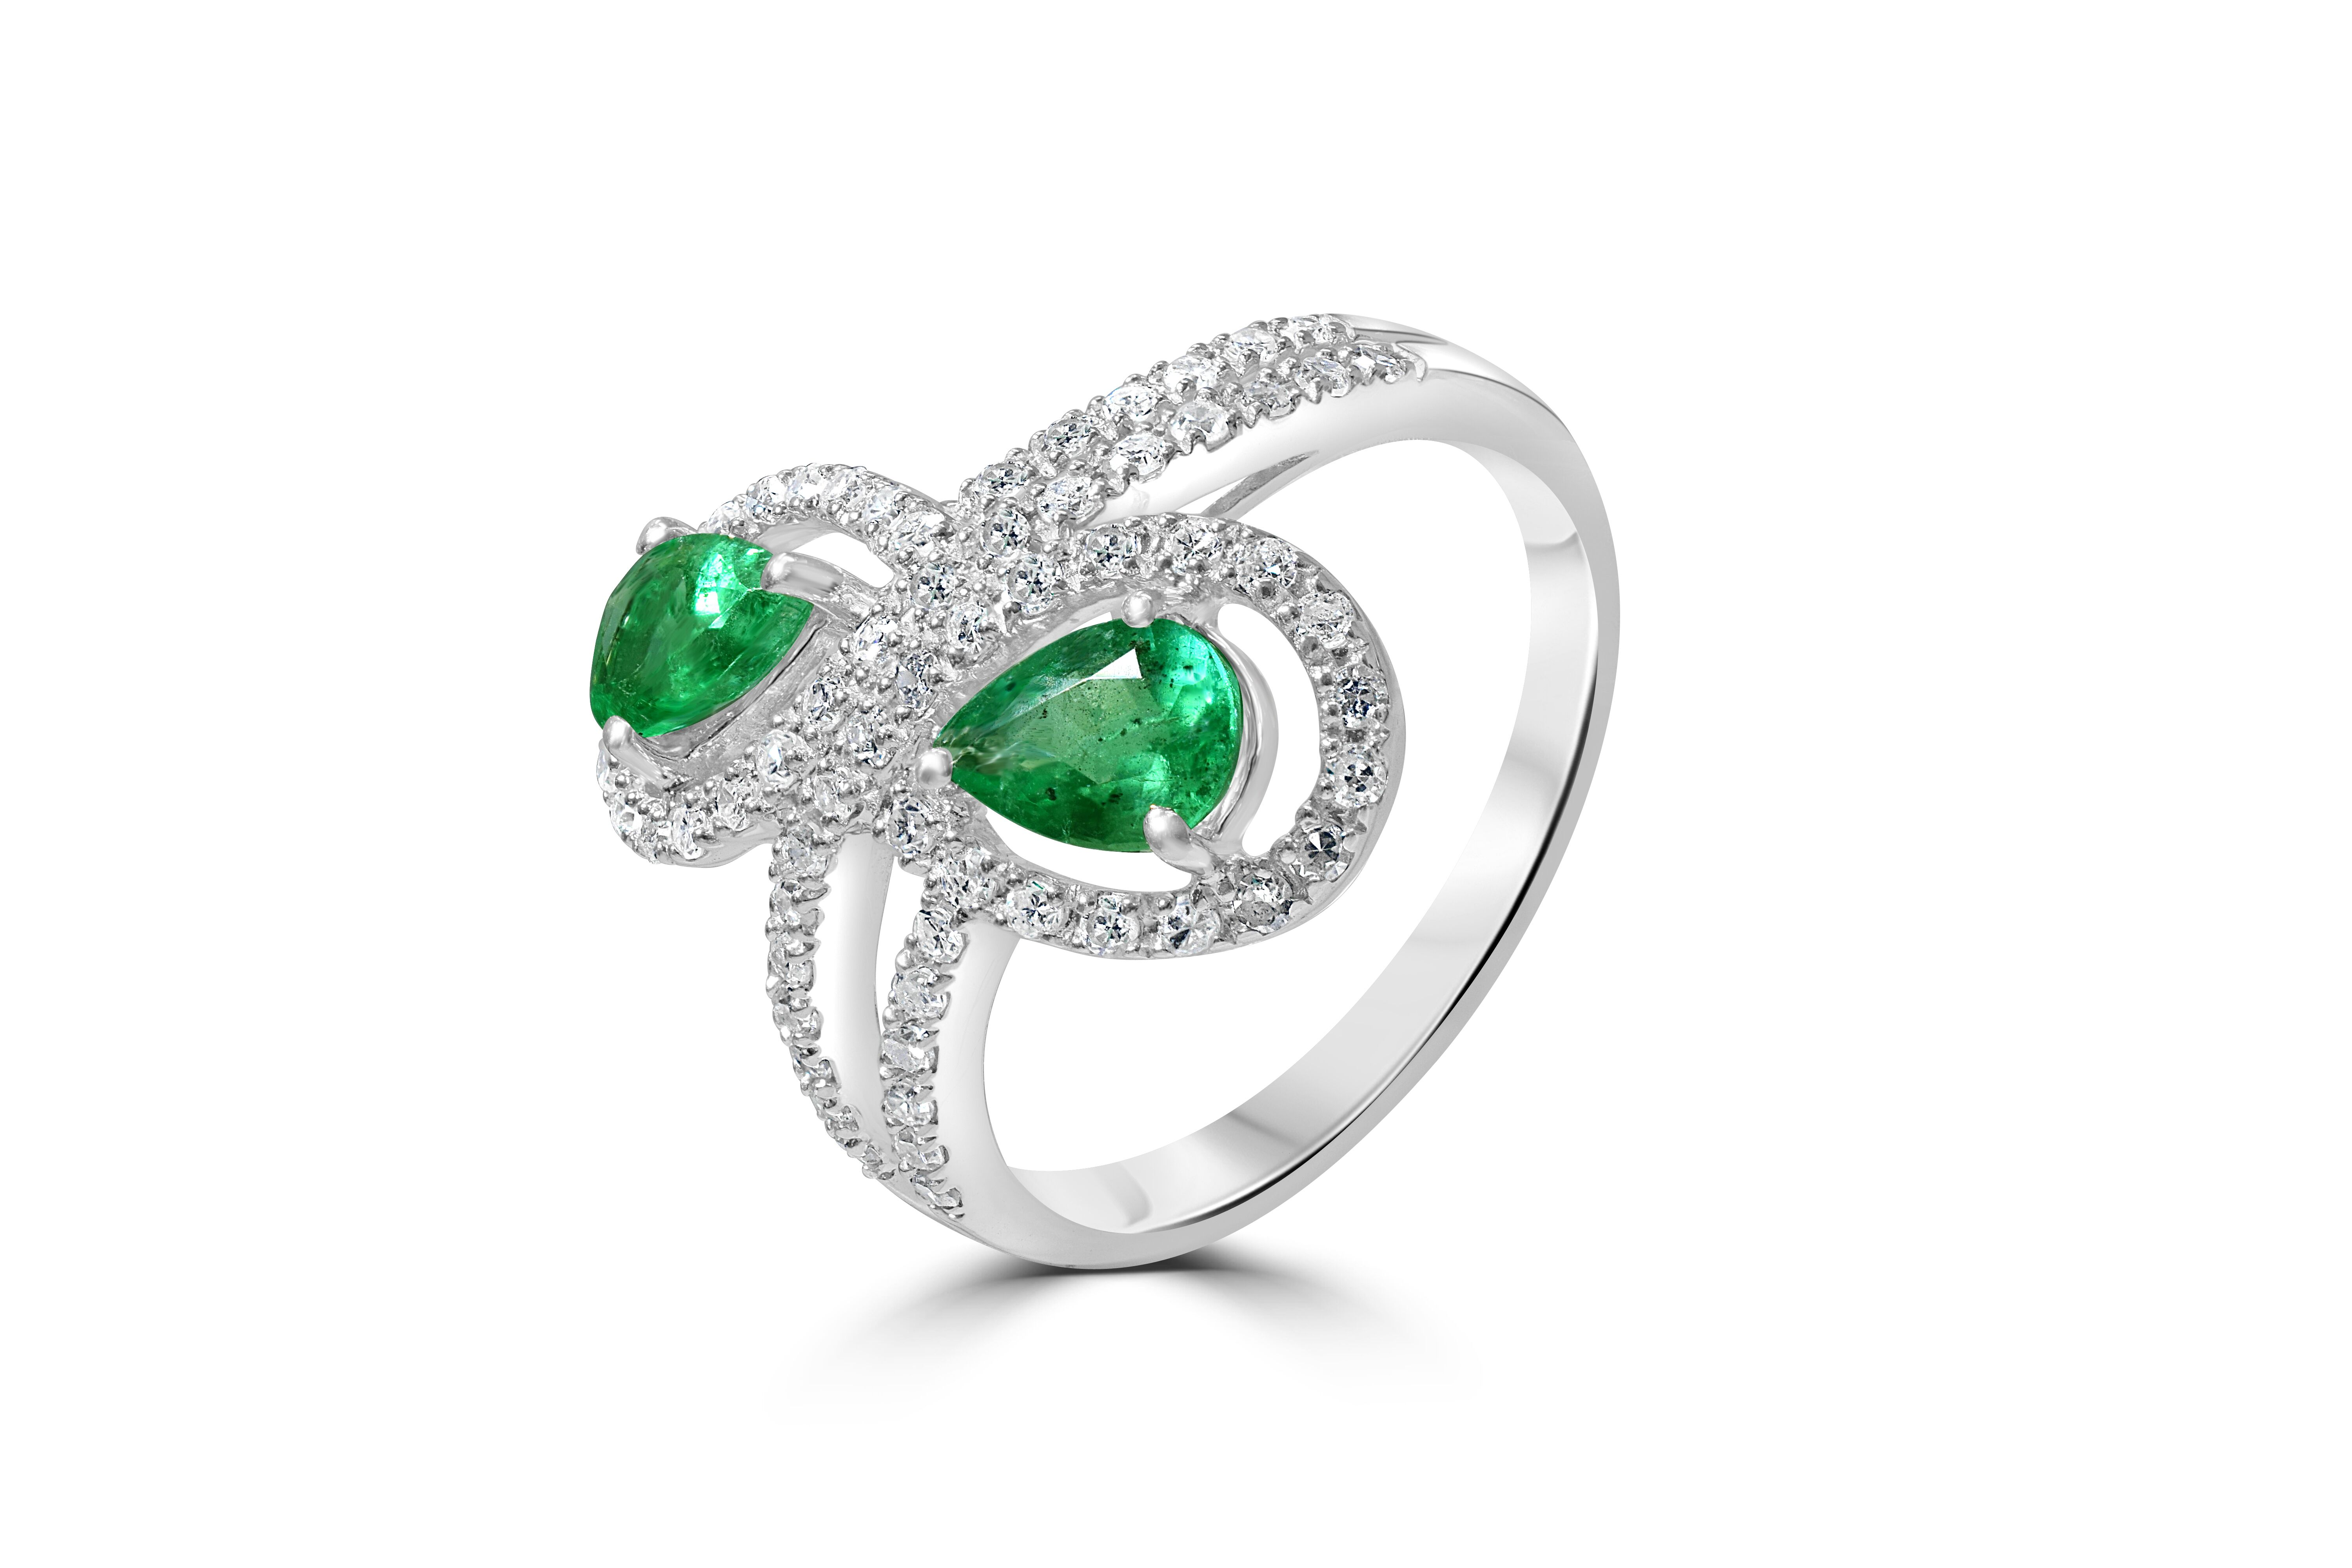 Two Stone Emerald and Diamond 9ct White Gold Ring RRP £2695 Size M